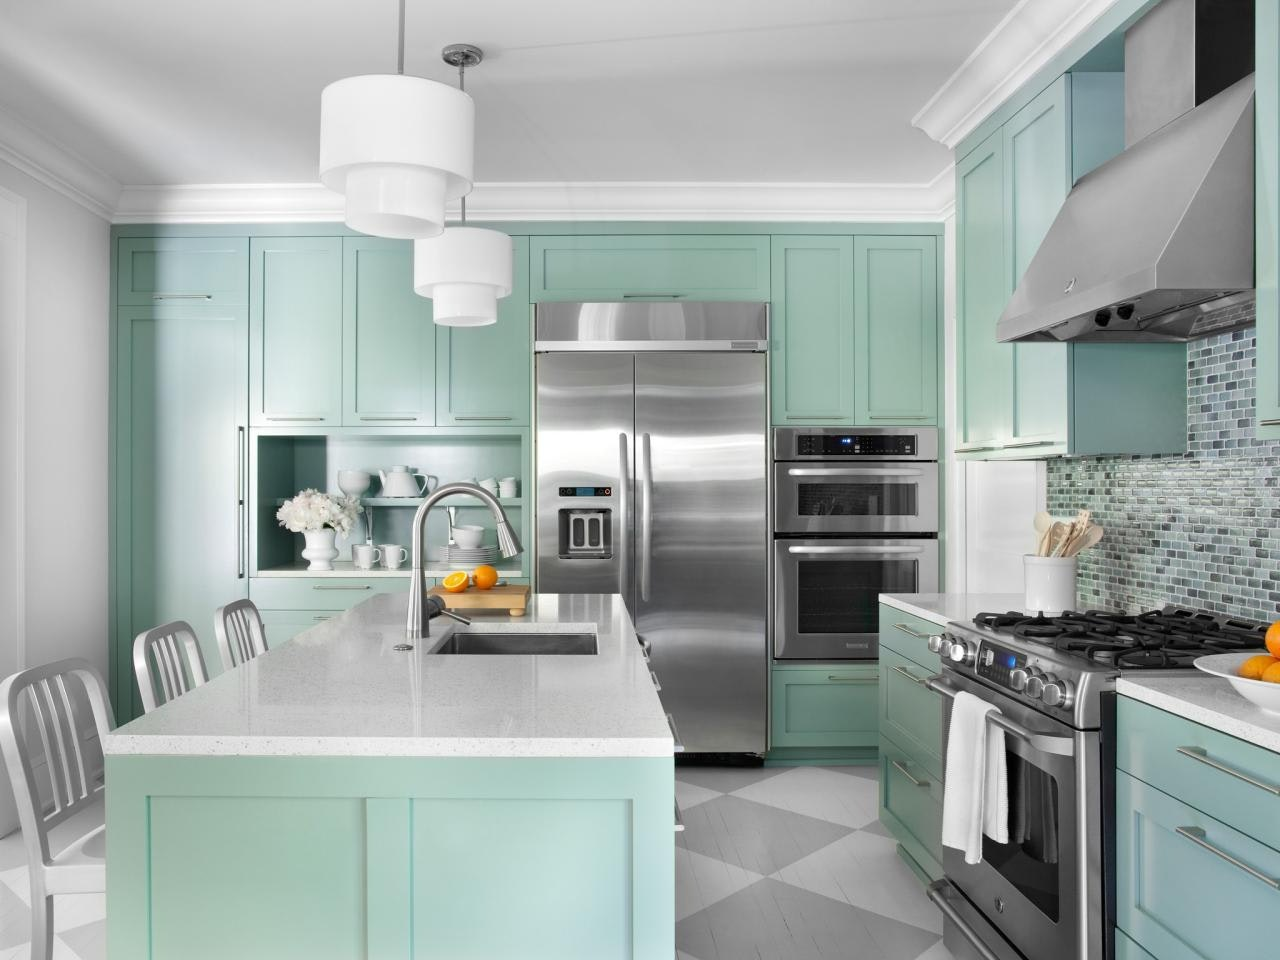 Comparing Clear Cut Kitchen Cabinets Plans